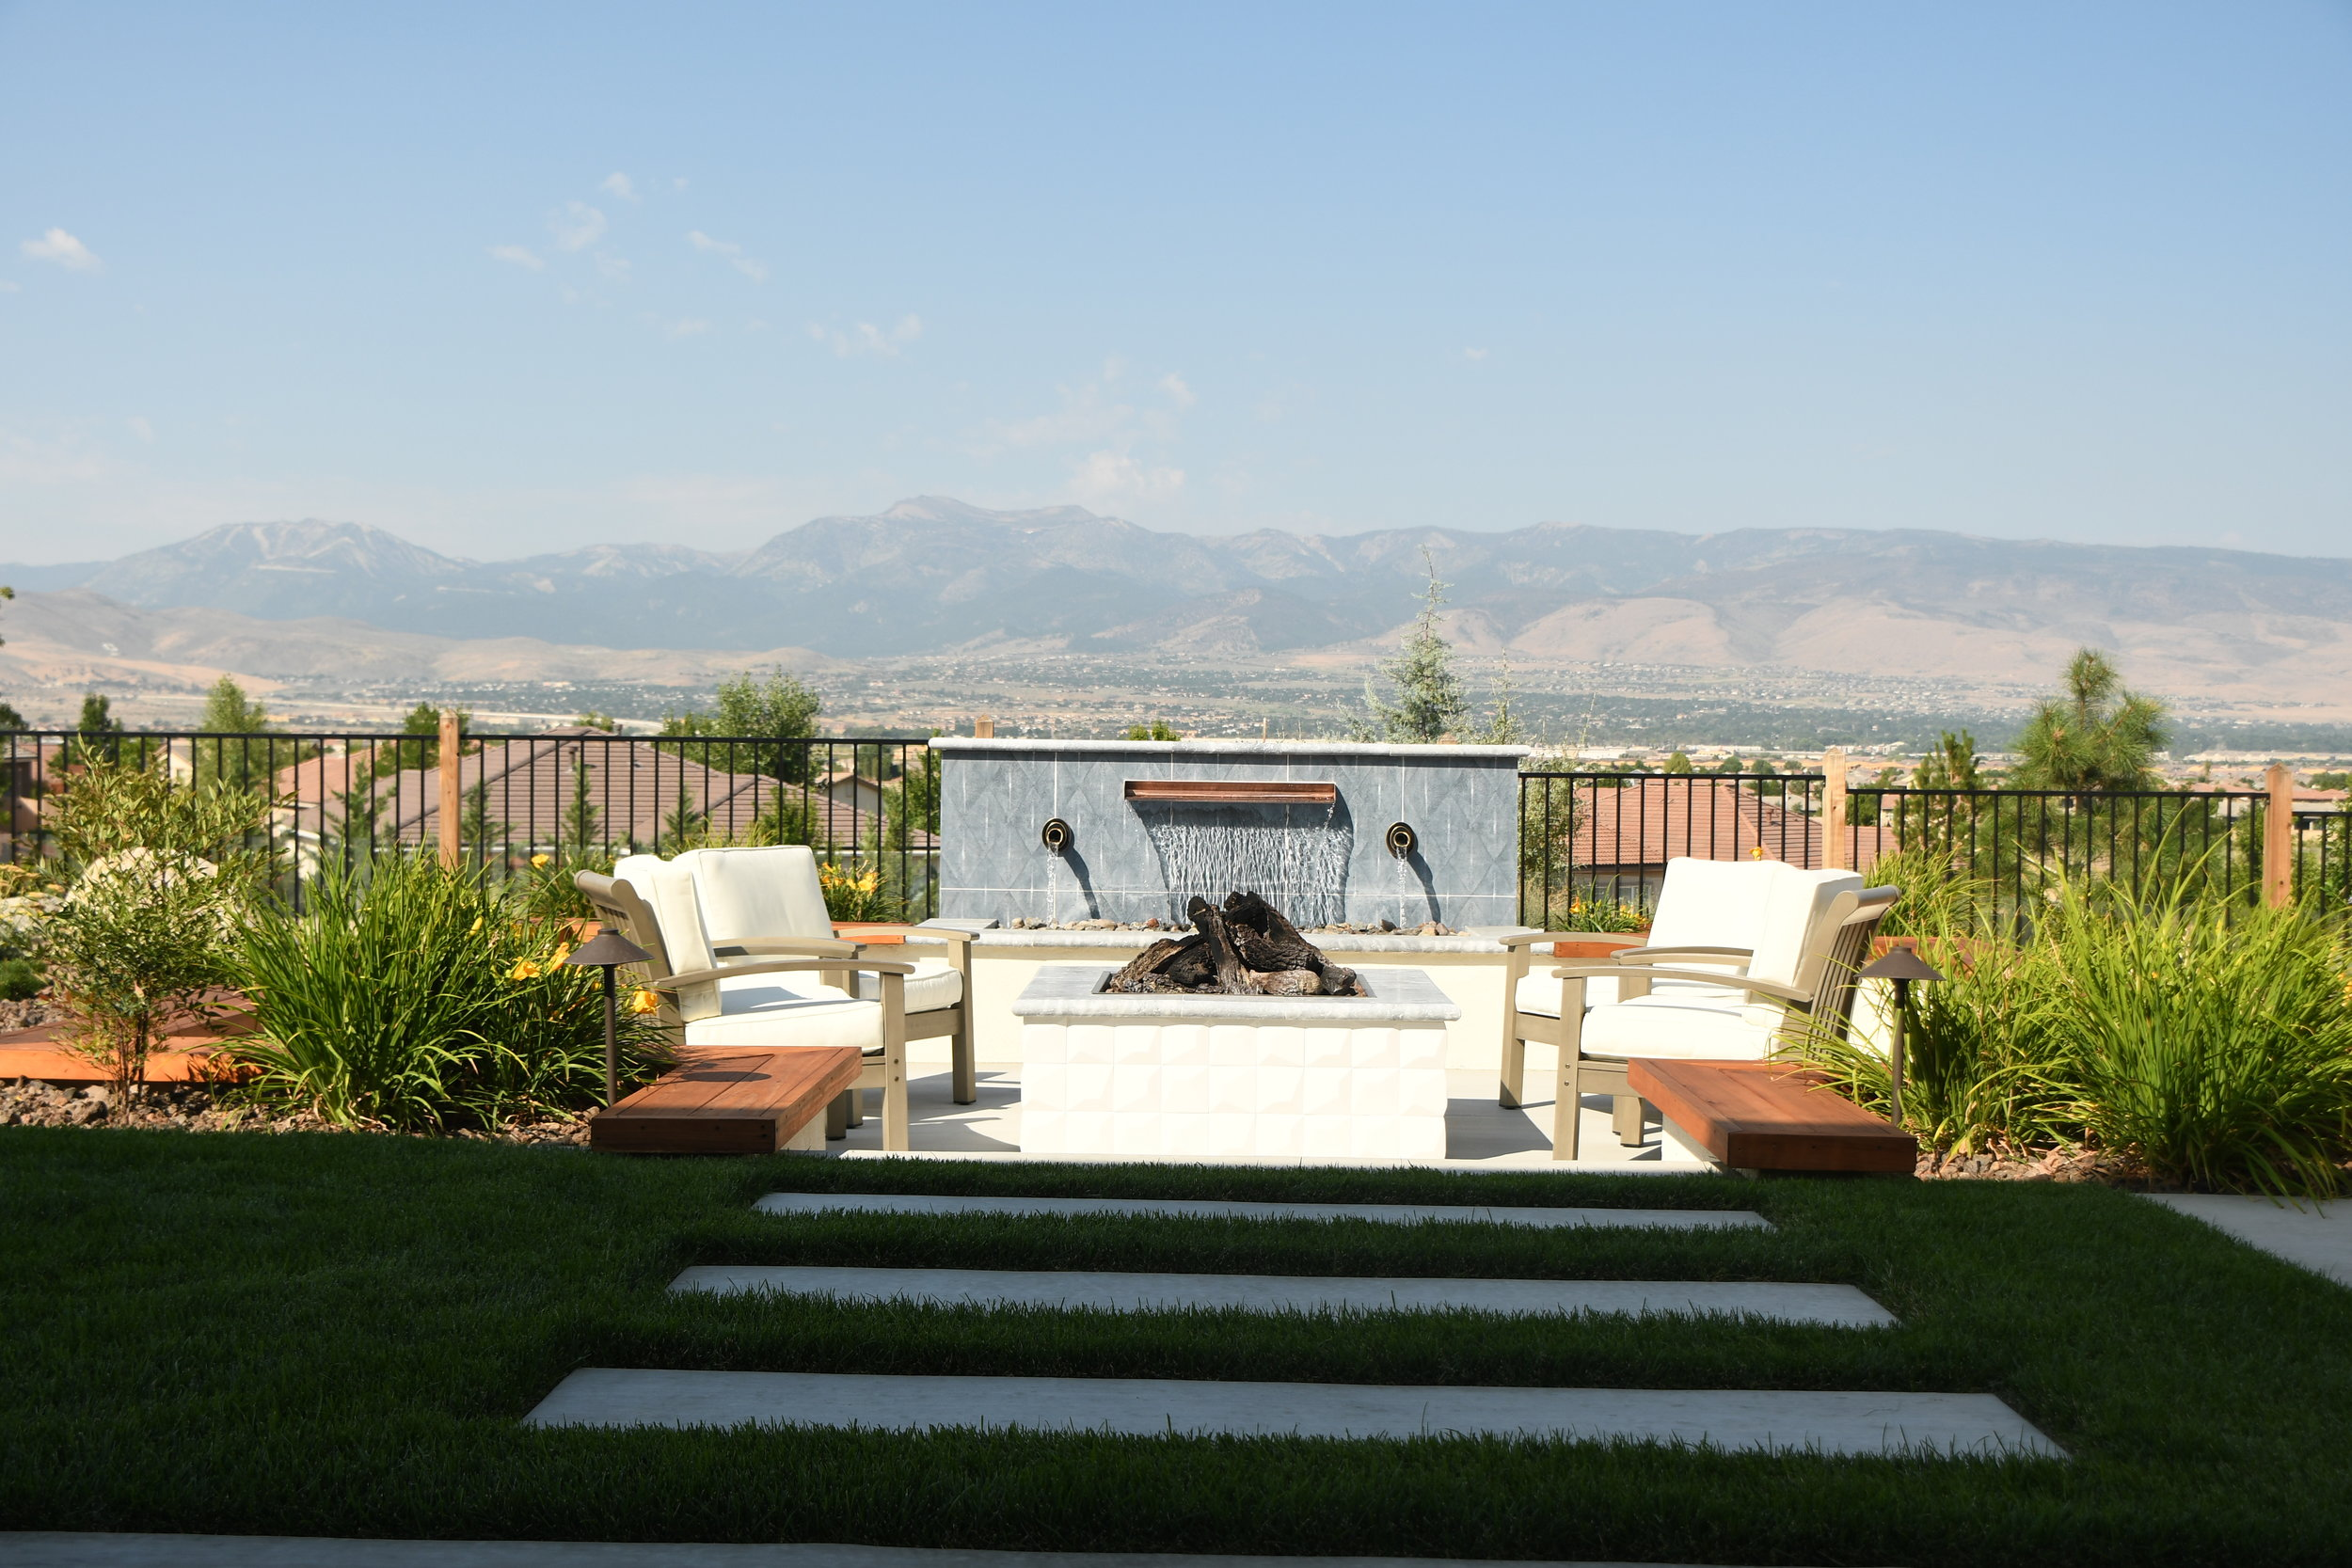 Landscapers Near Me in Spanish Springs, NV, That Build Designs for Luxury Homes